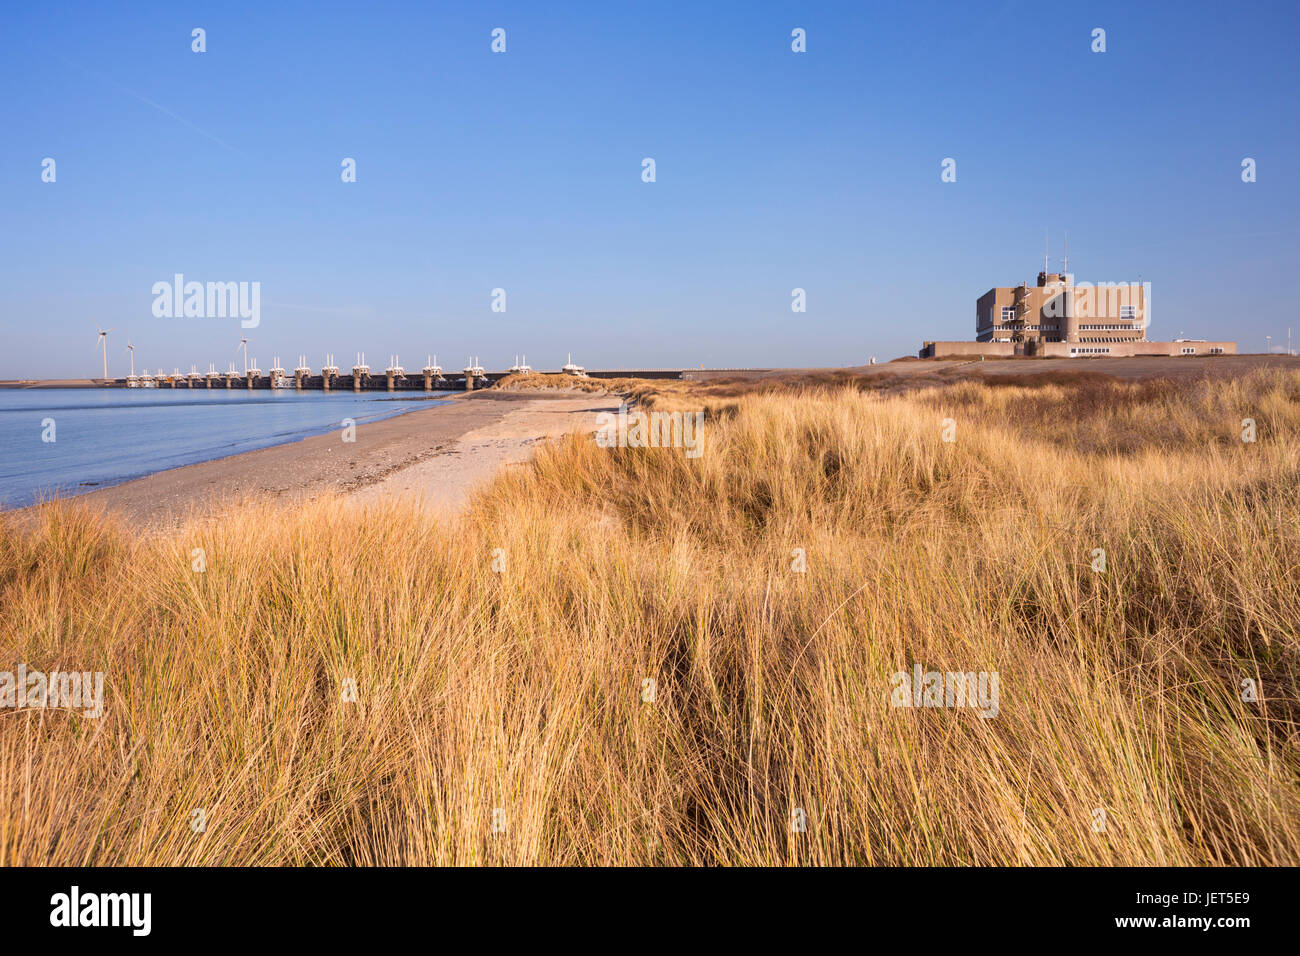 The Eastern Scheldt Storm Surge Barrier at Neeltje Jans in the province of Zeeland in The Netherlands. - Stock Image